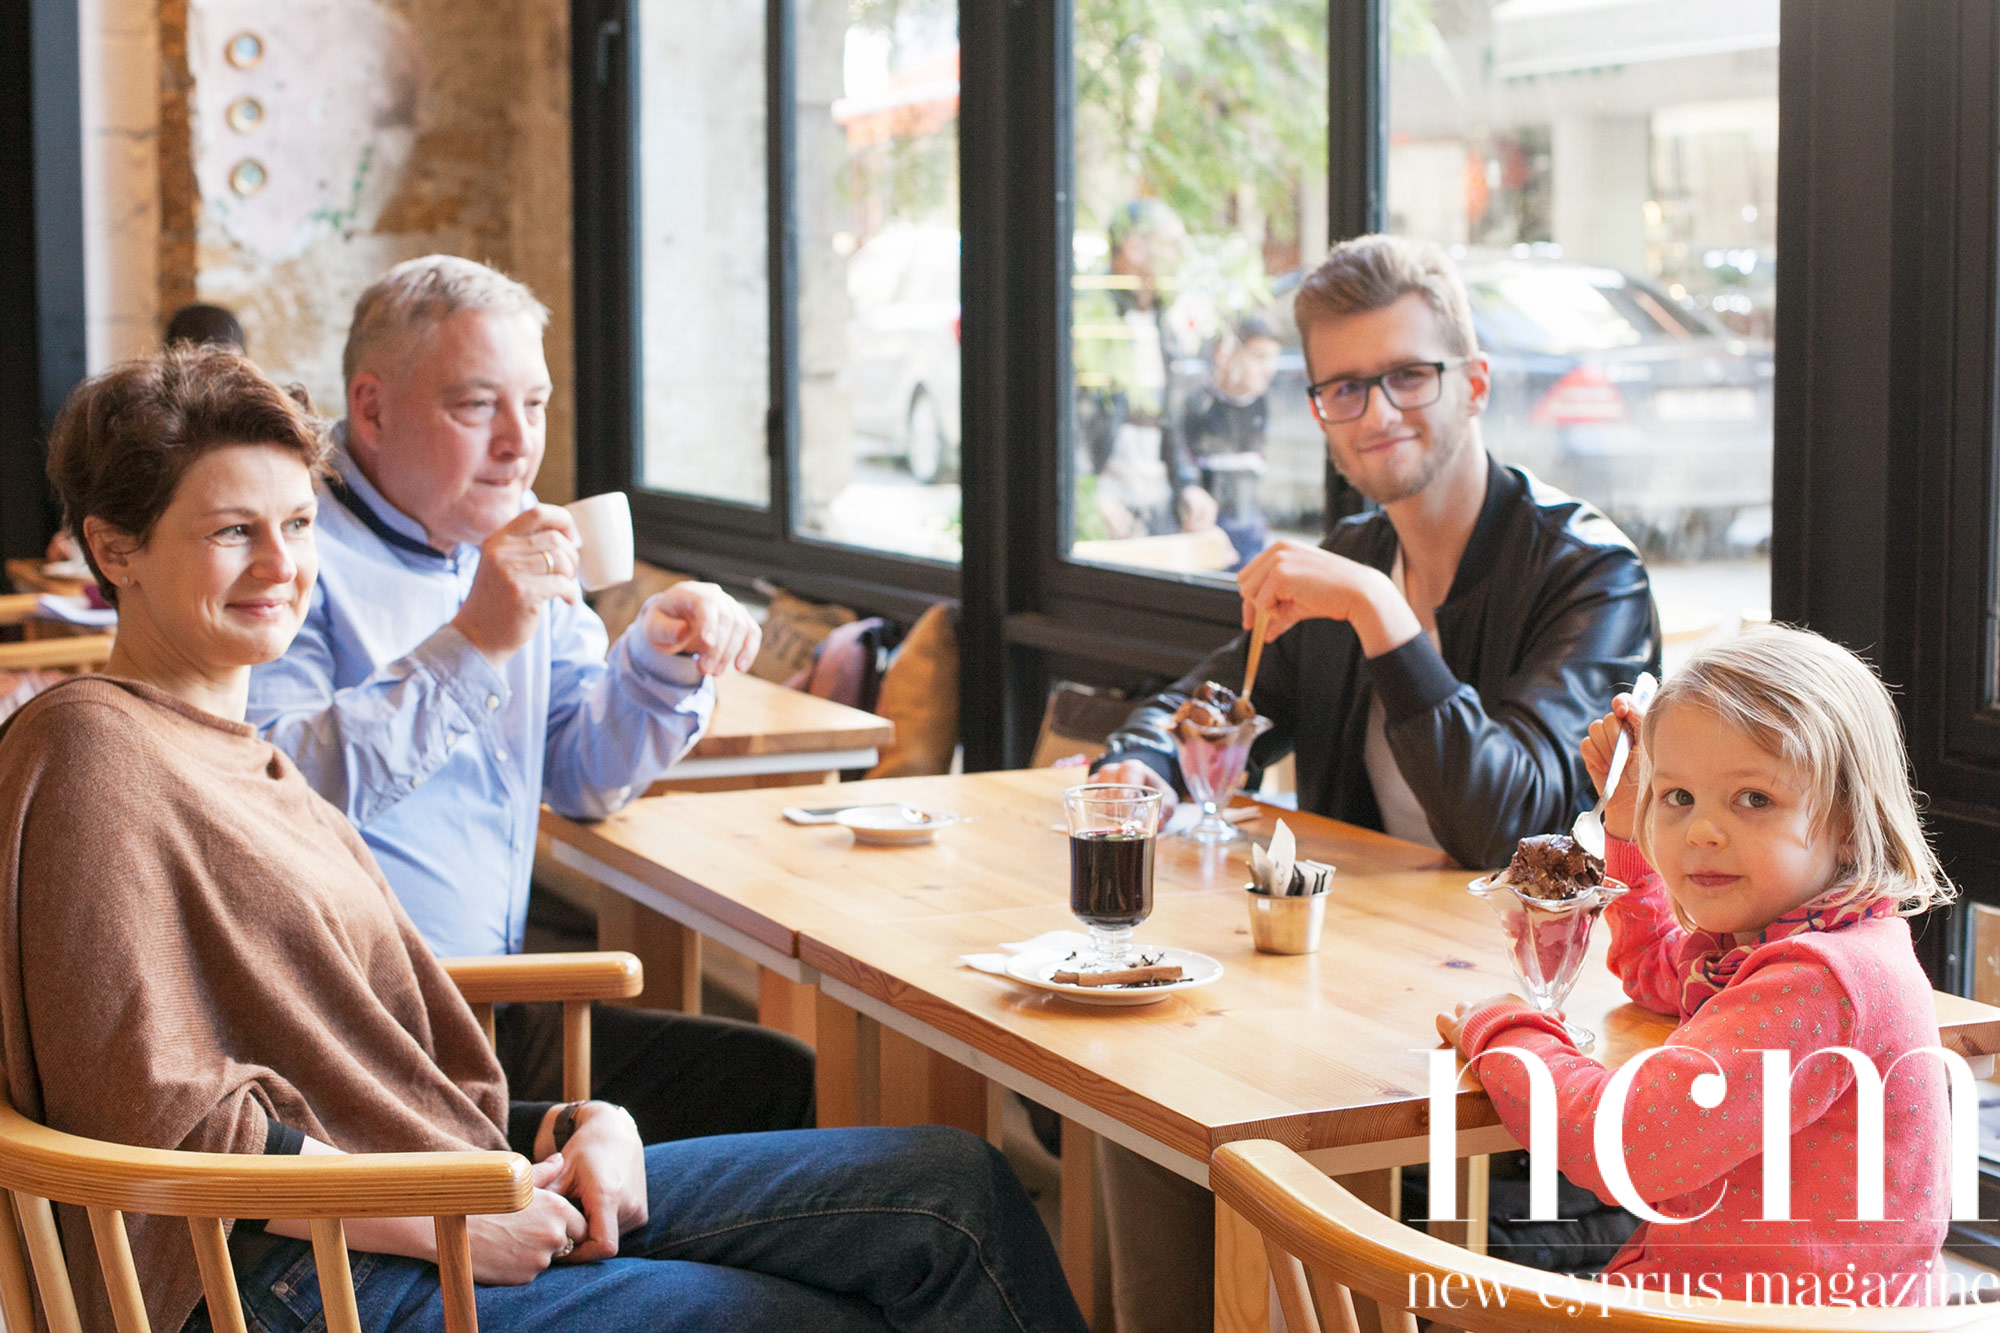 Café No 3 is the place to go in Nicosia